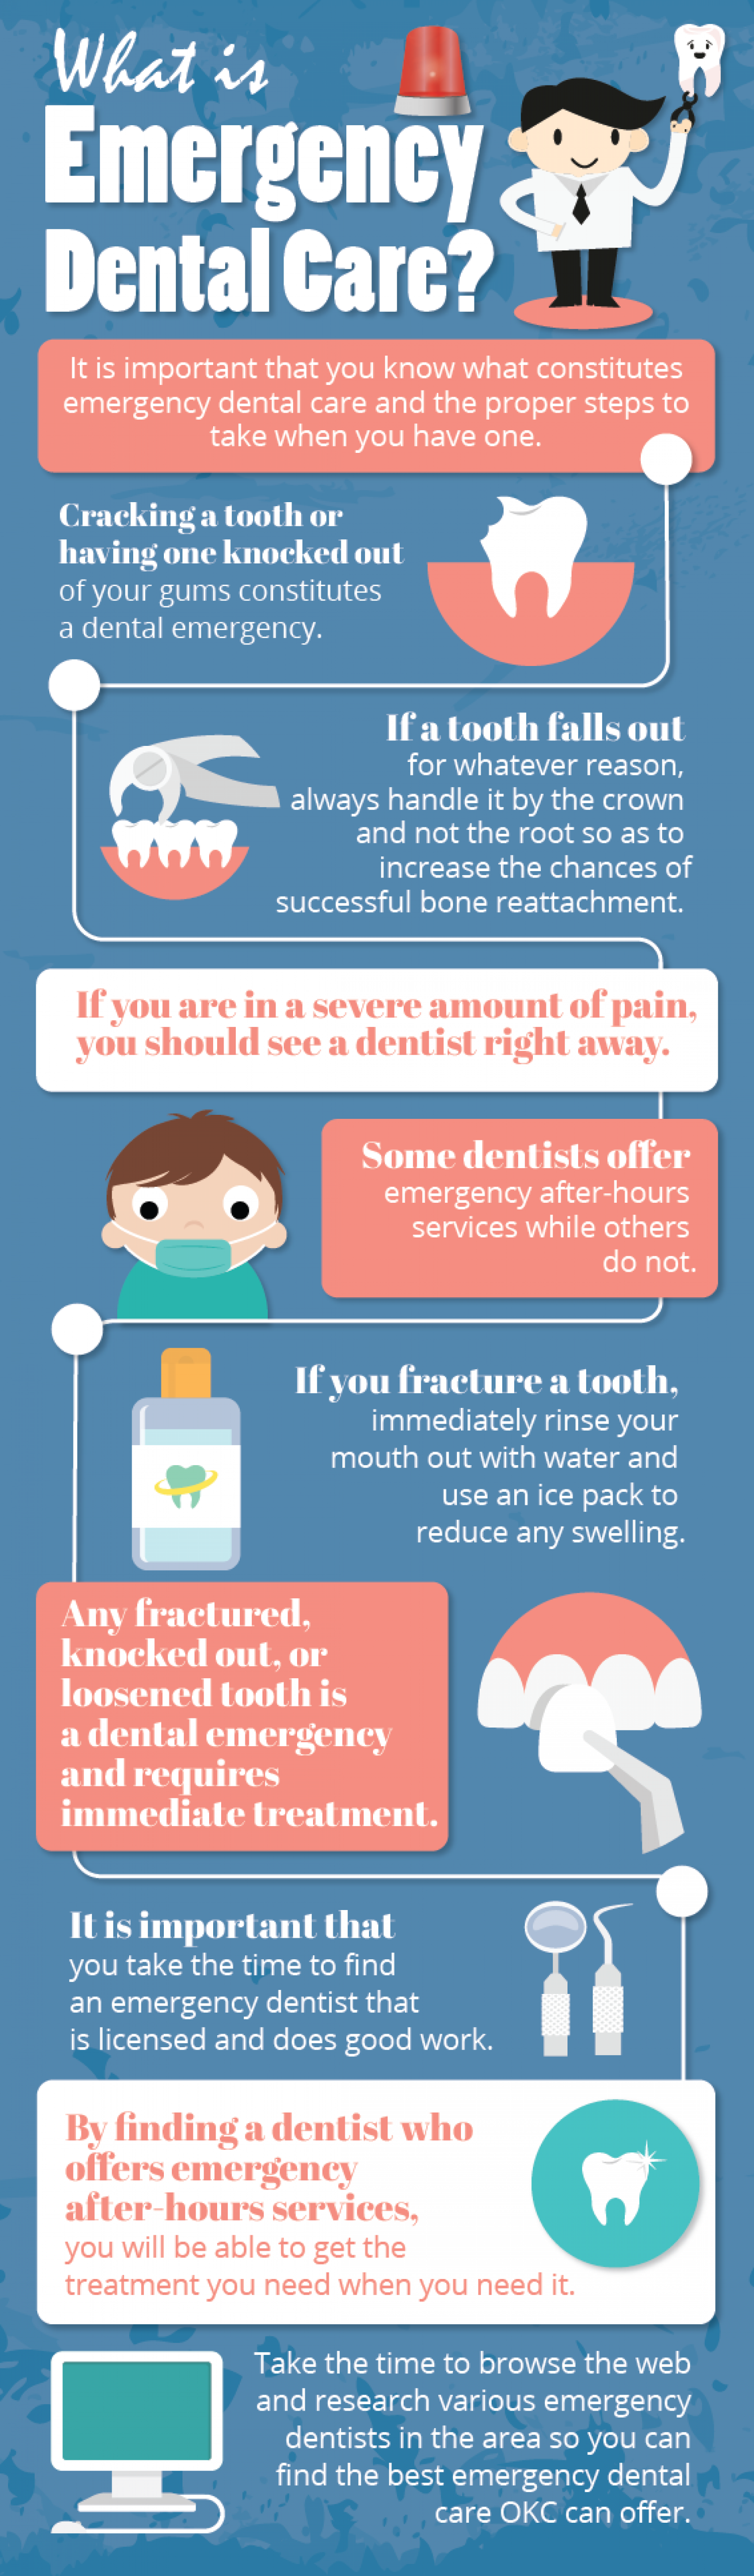 What is Emergency Dental Care? Infographic